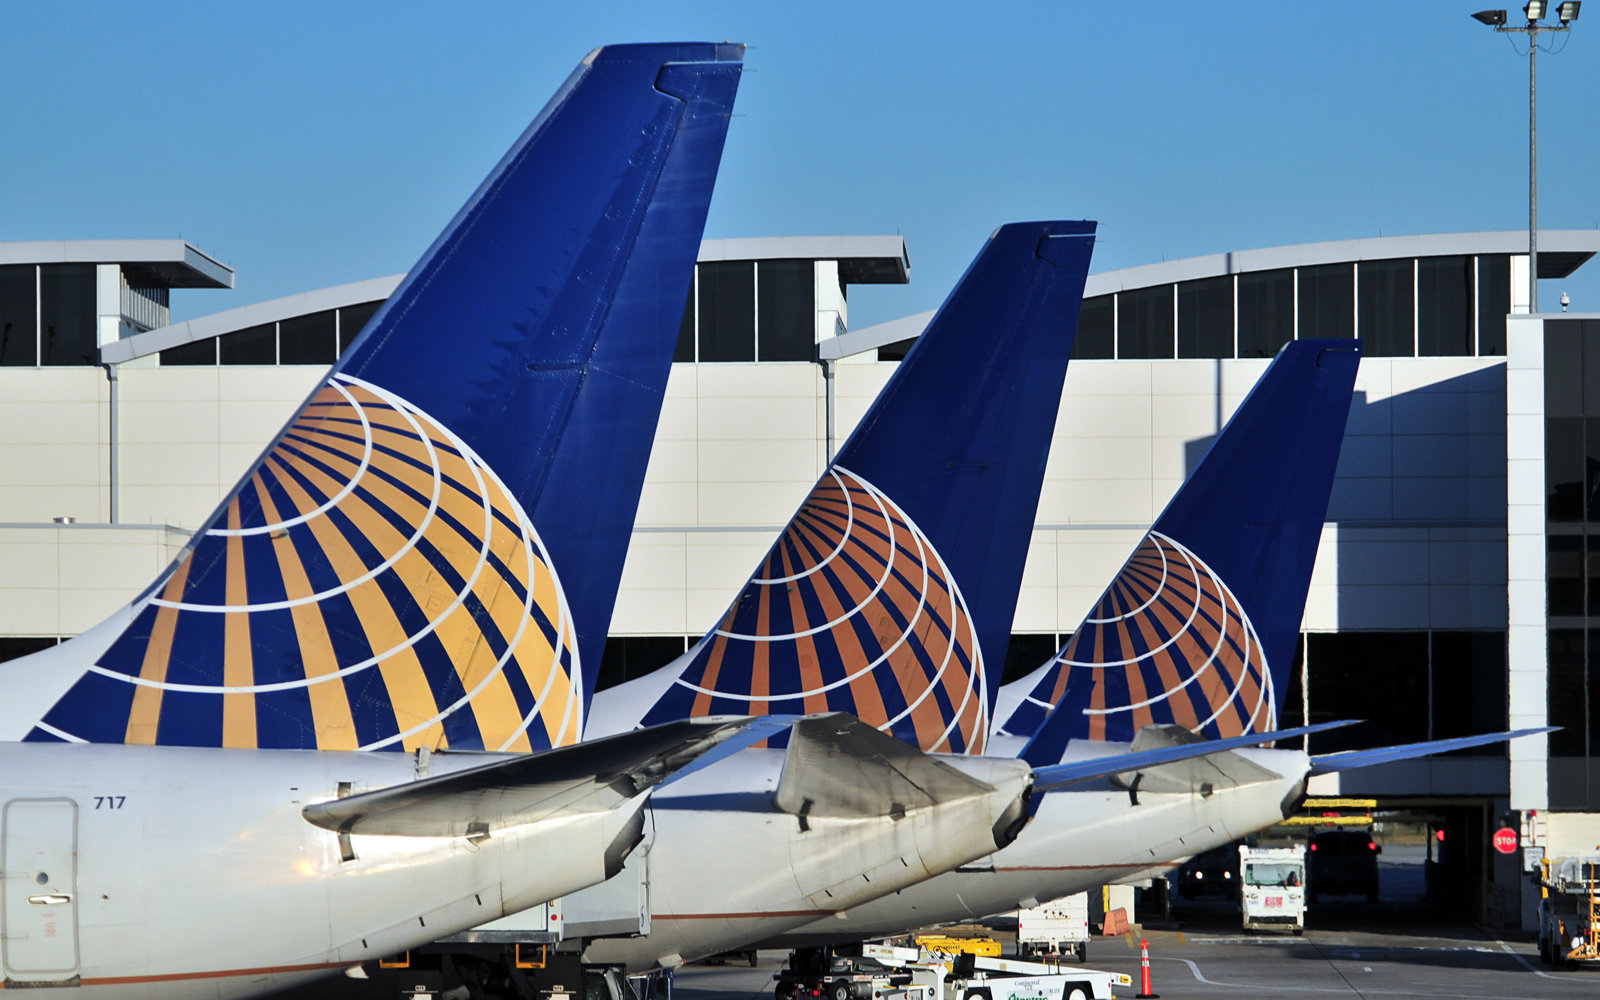 United is definitely not the favorite.